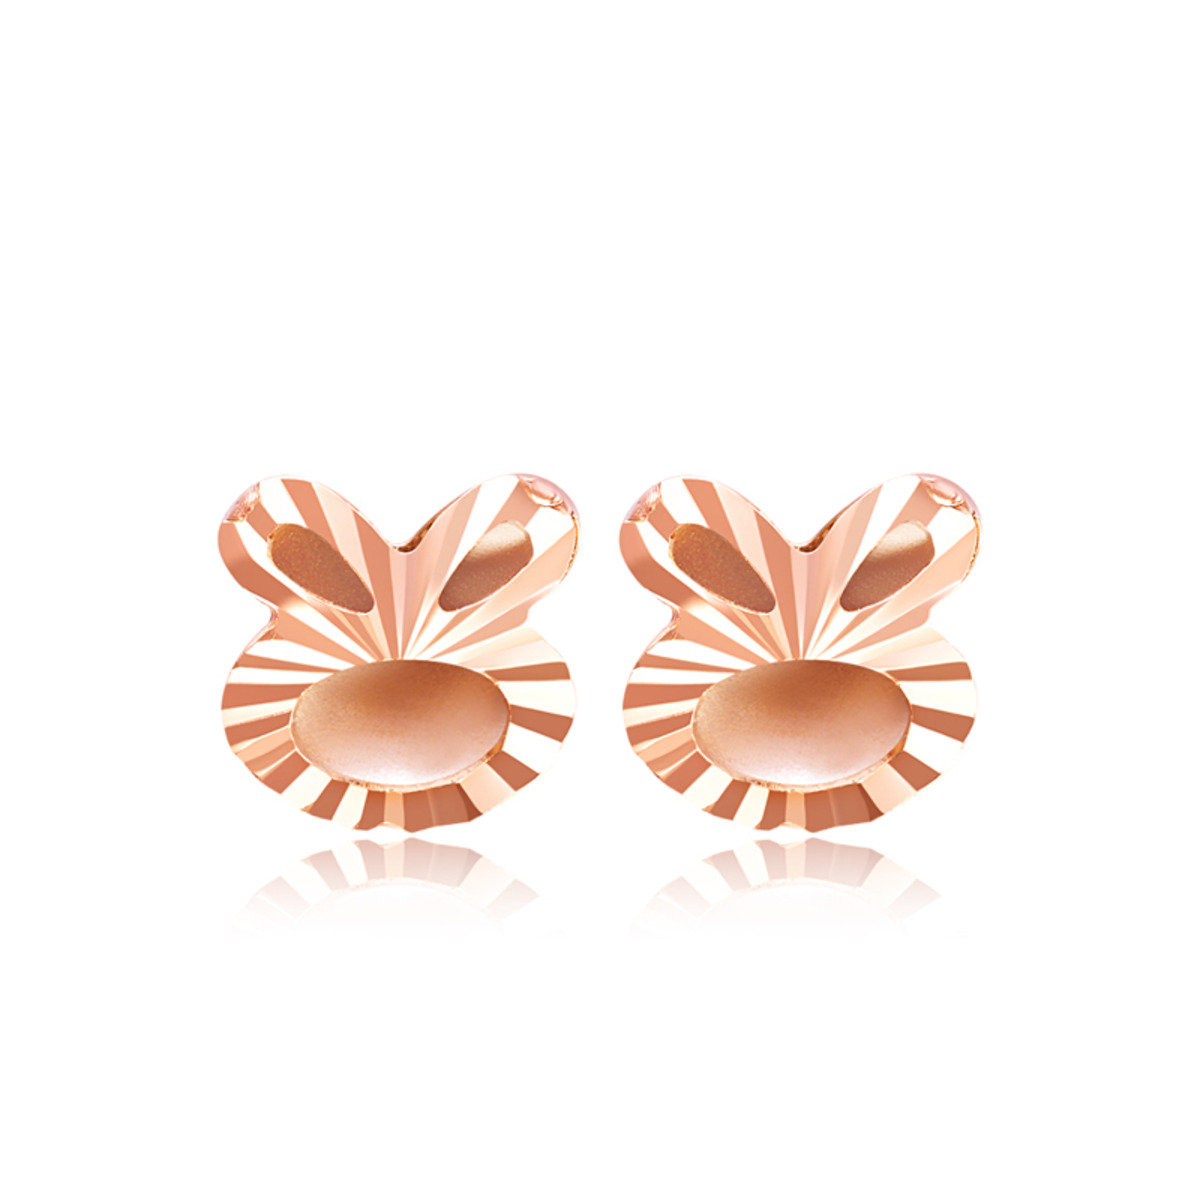 18K/750 Rose Gold earrings